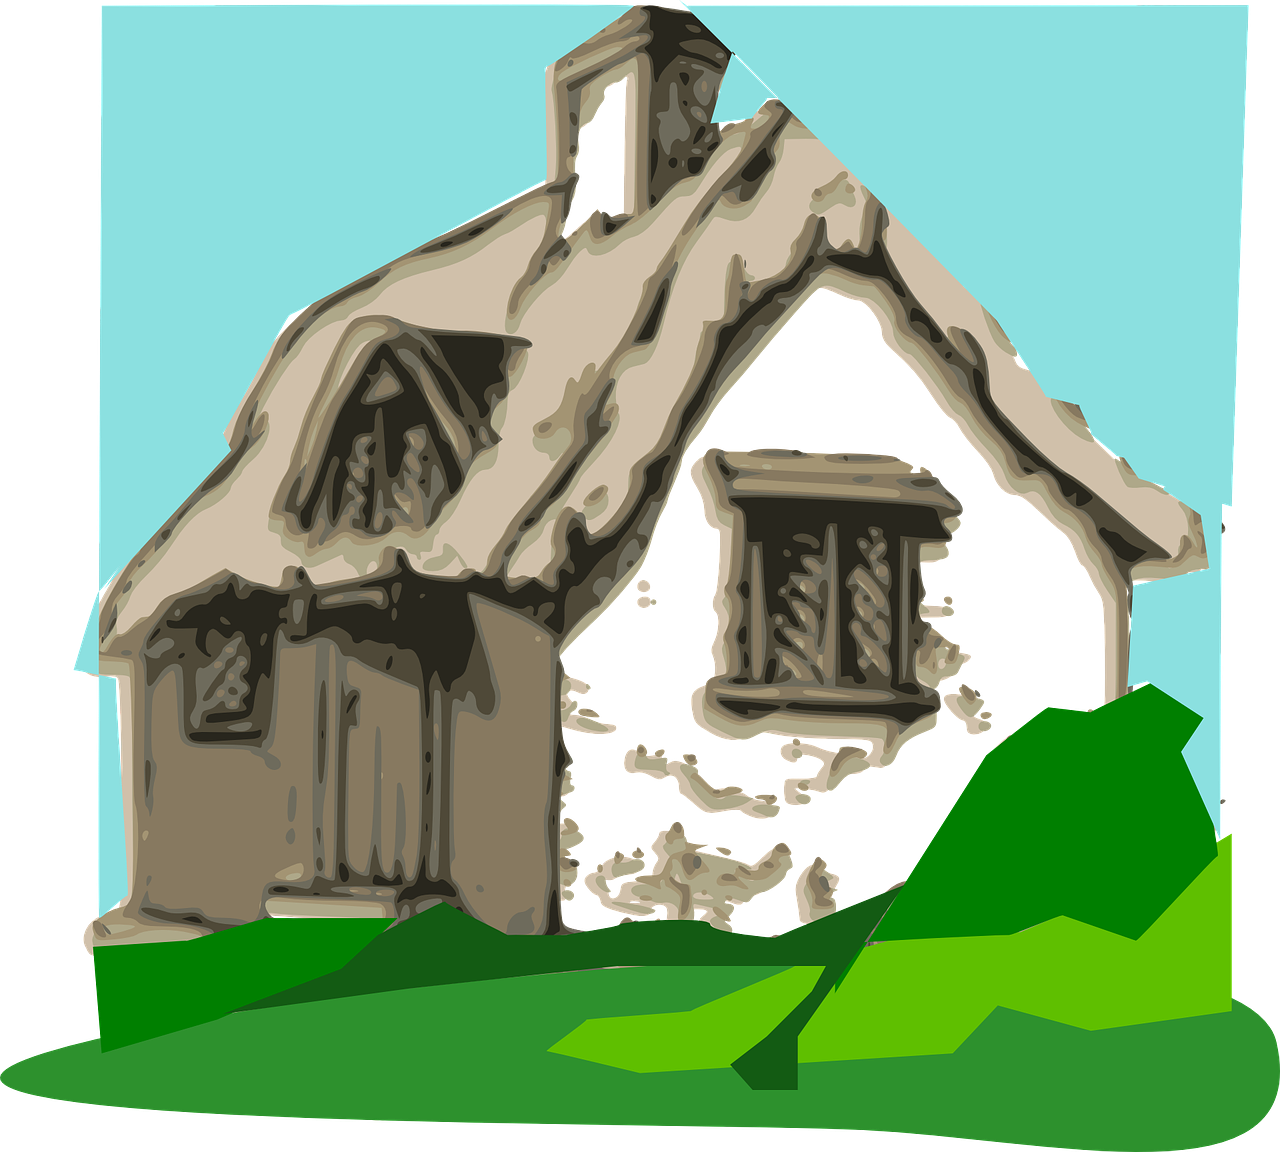 Living in a Tiny Home: Benefits & Drawbacks